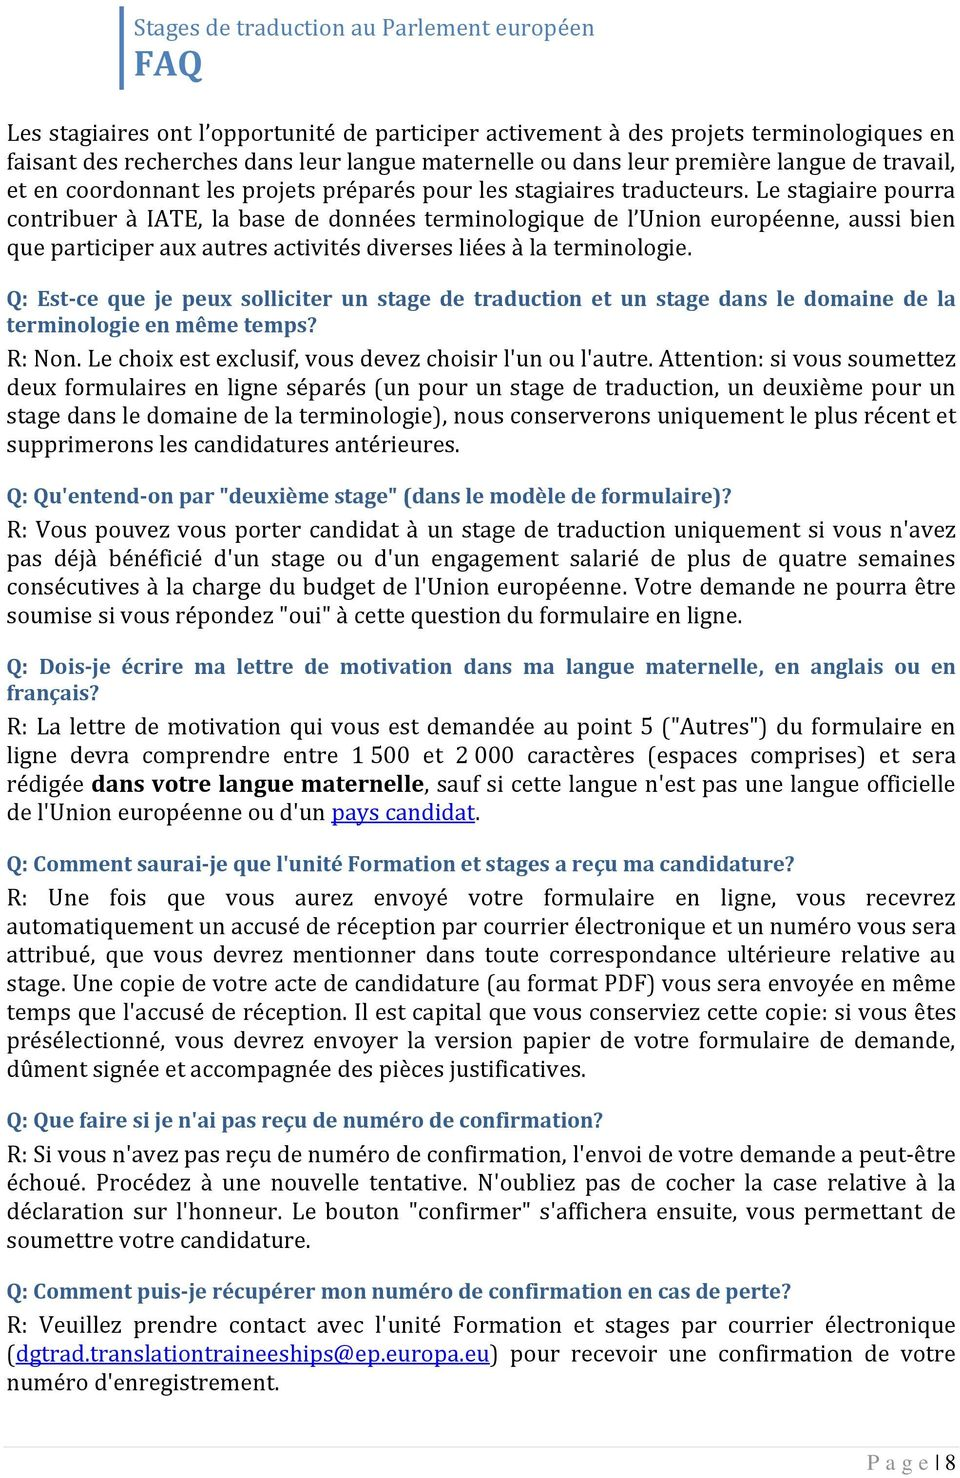 Stages De Traduction Au Parlement Européen Faq Pdf Free